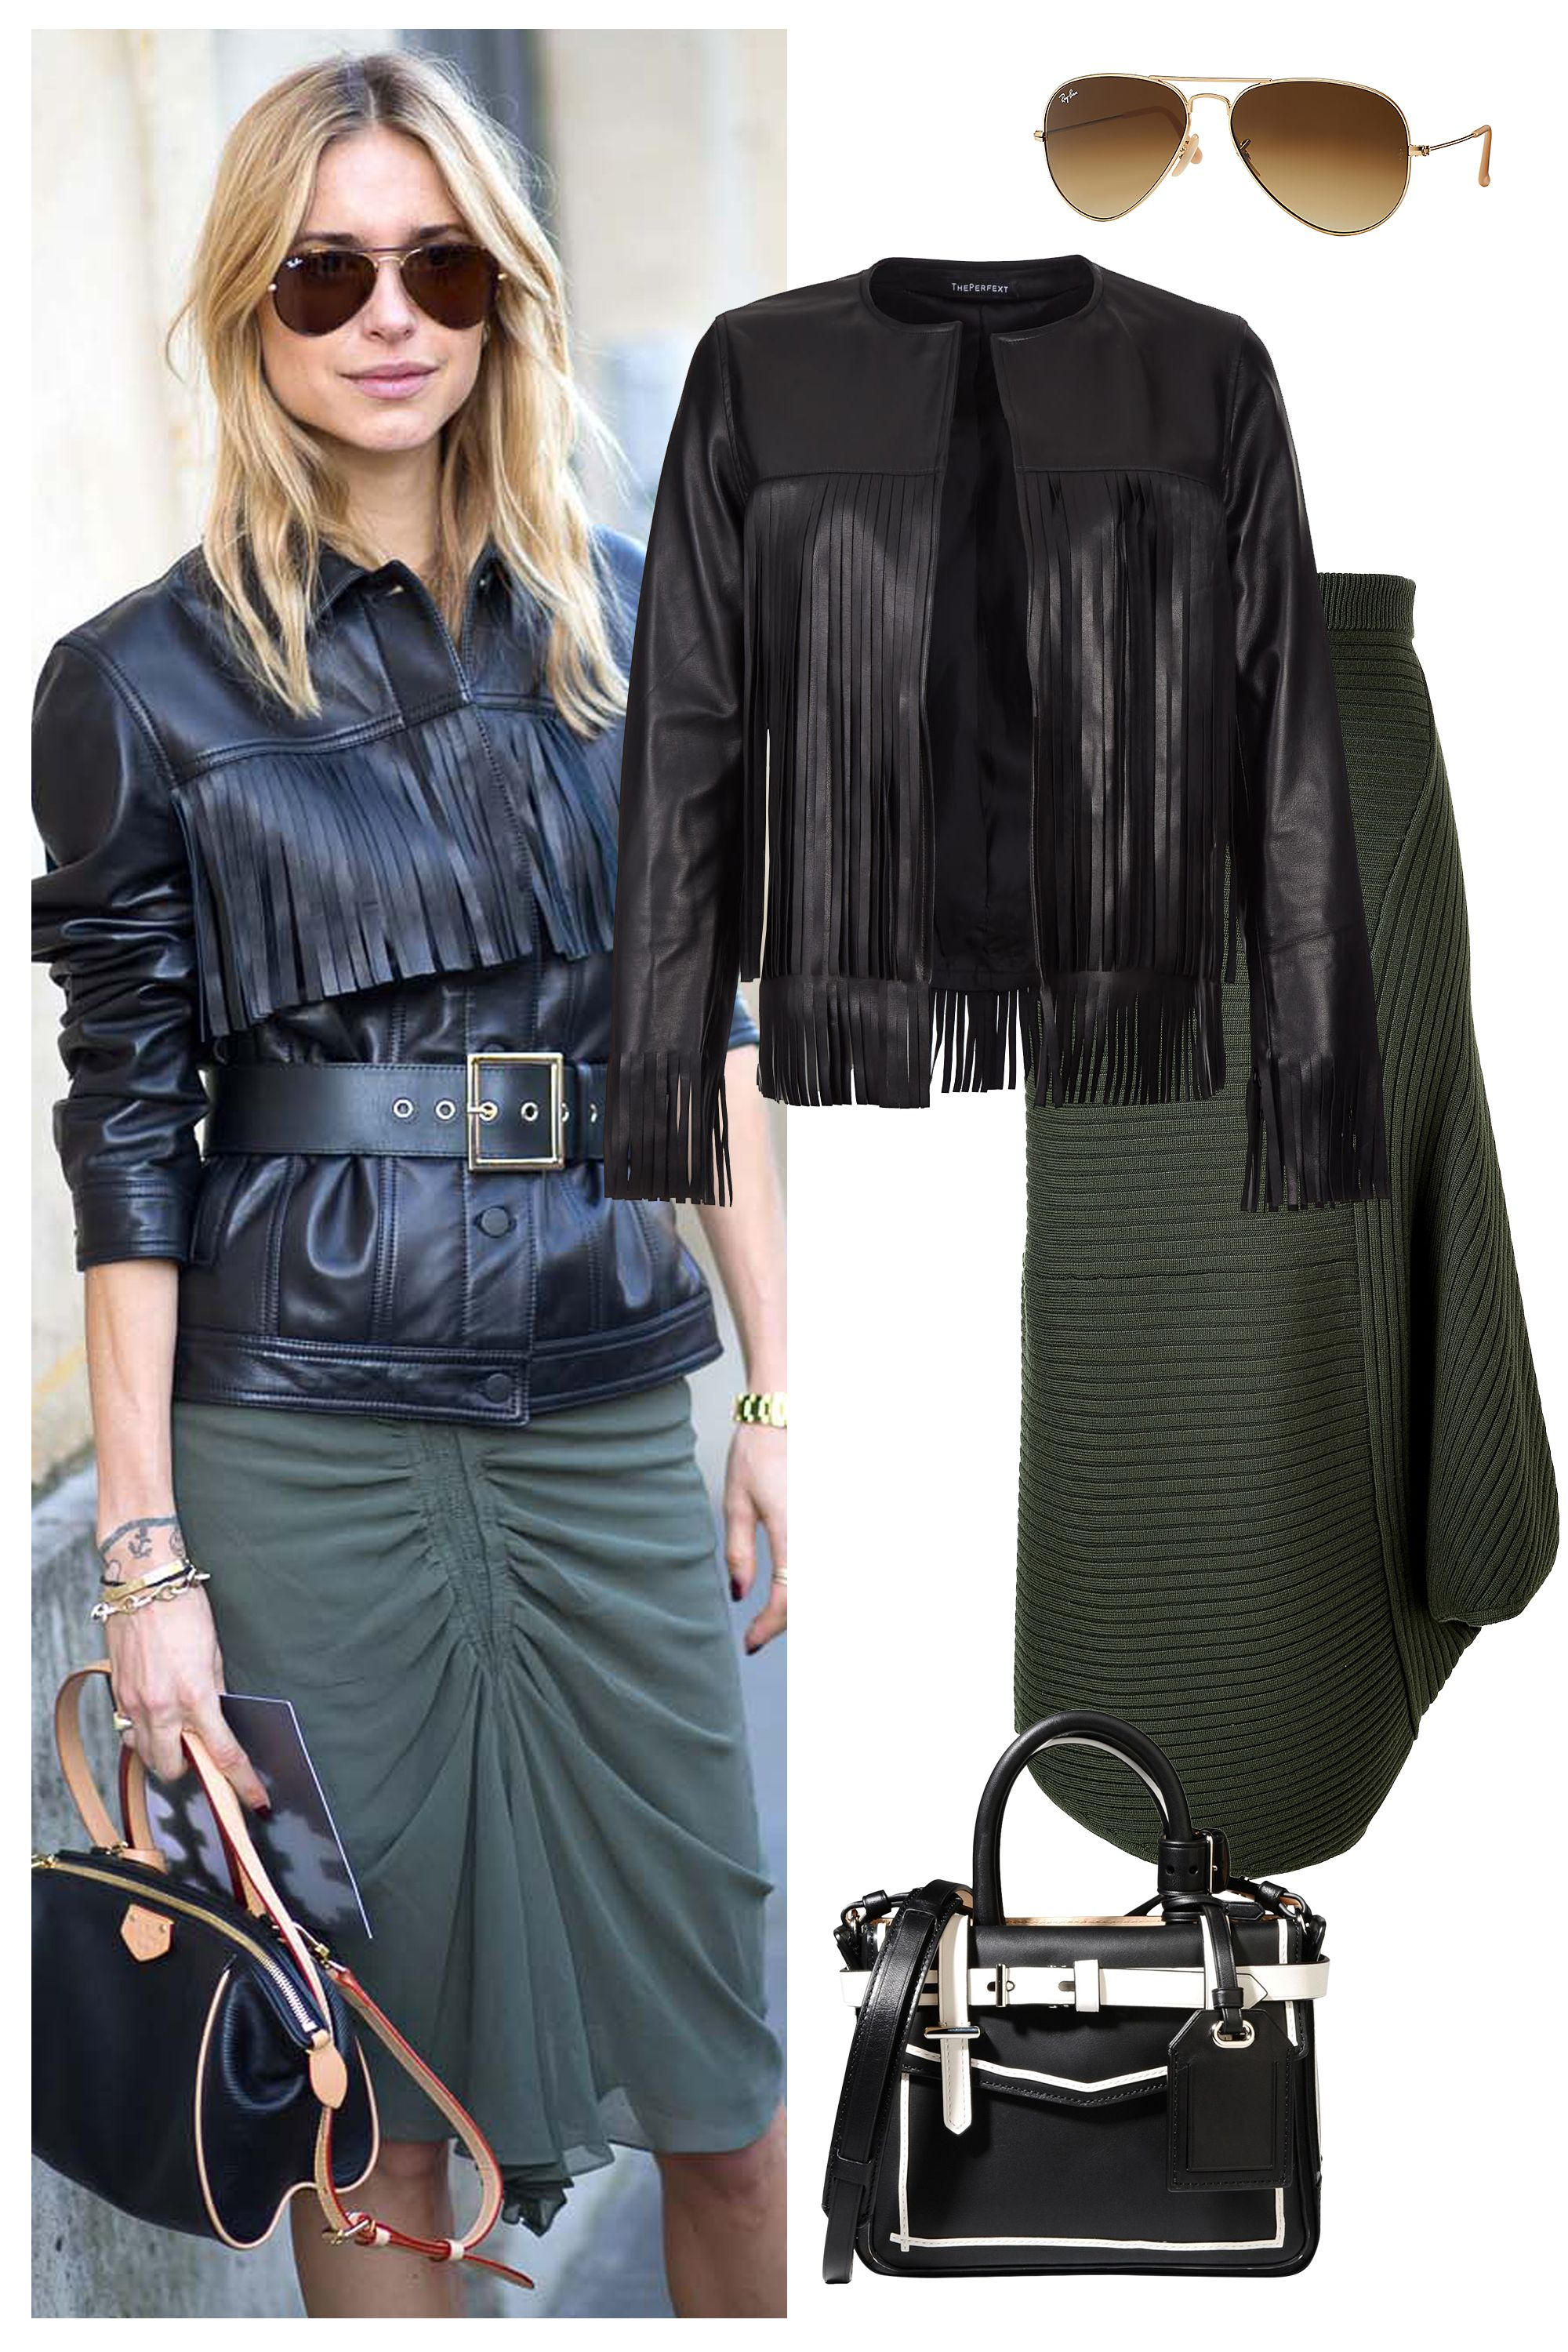 Shop the Look: Black Leather is Better